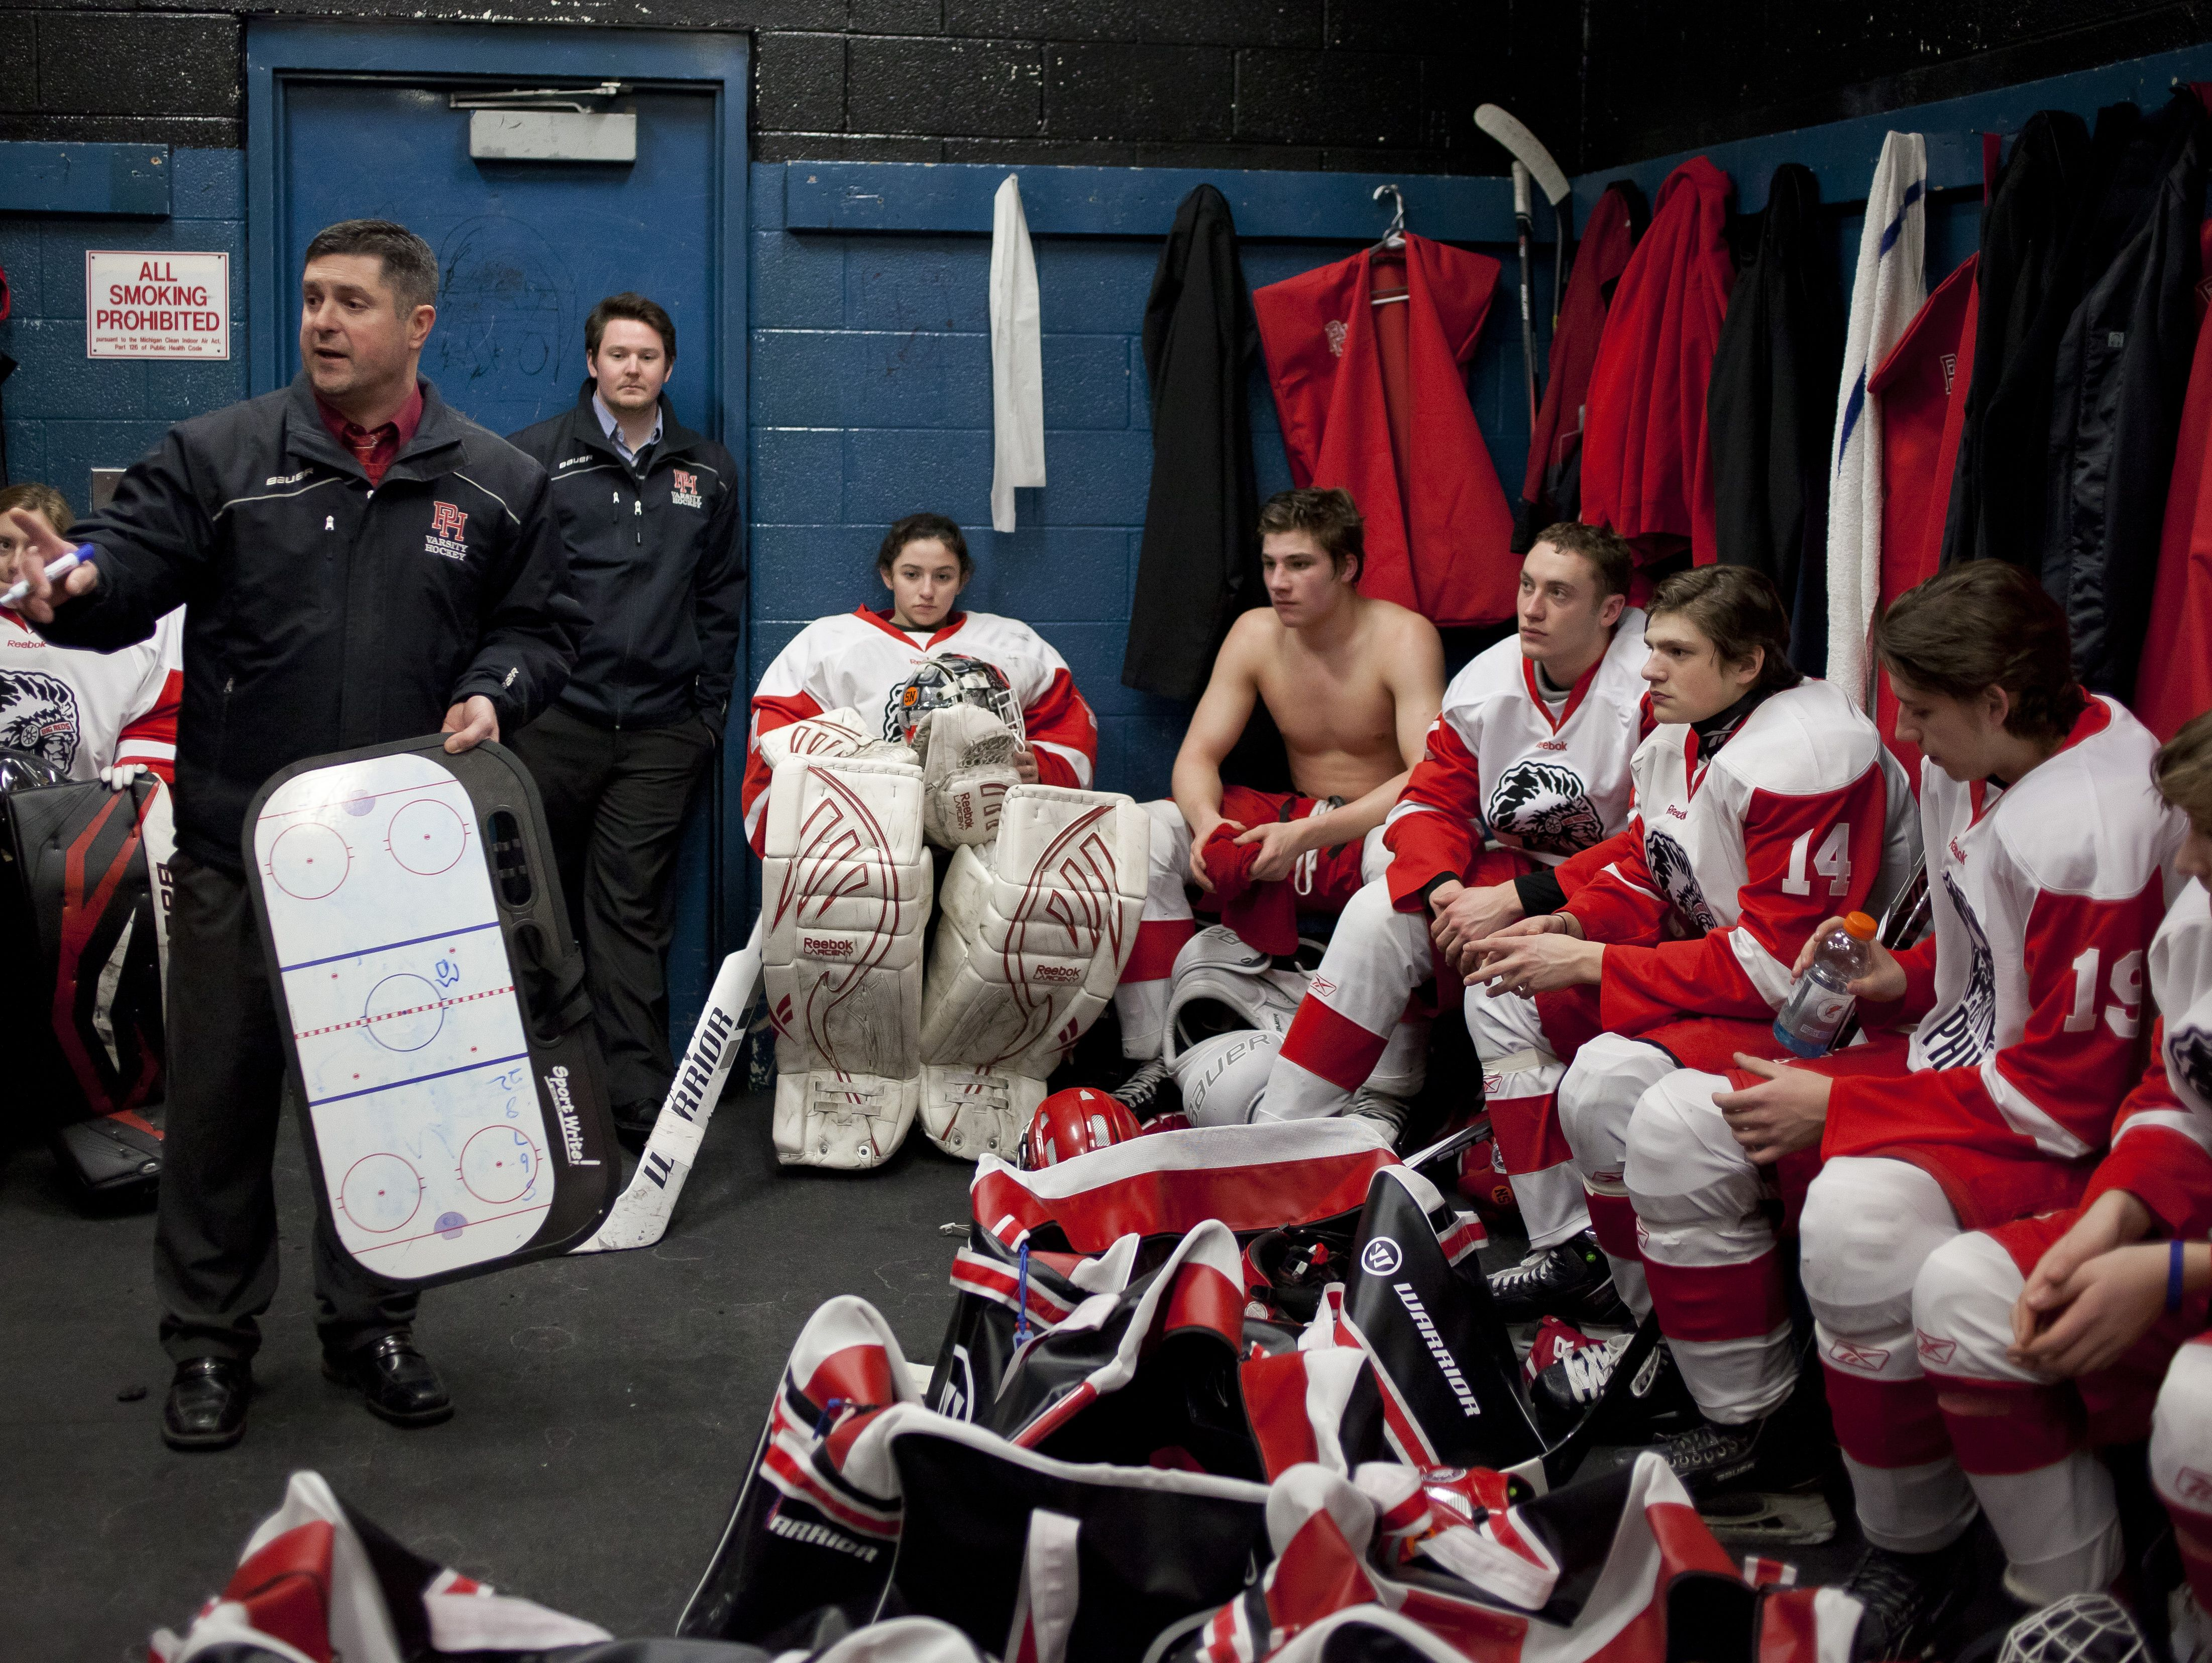 Port Huron coach Ben Pionk talks with players in the locker room during a hockey game Tuesday, March 3, 2015 at McMorran Pavilion.